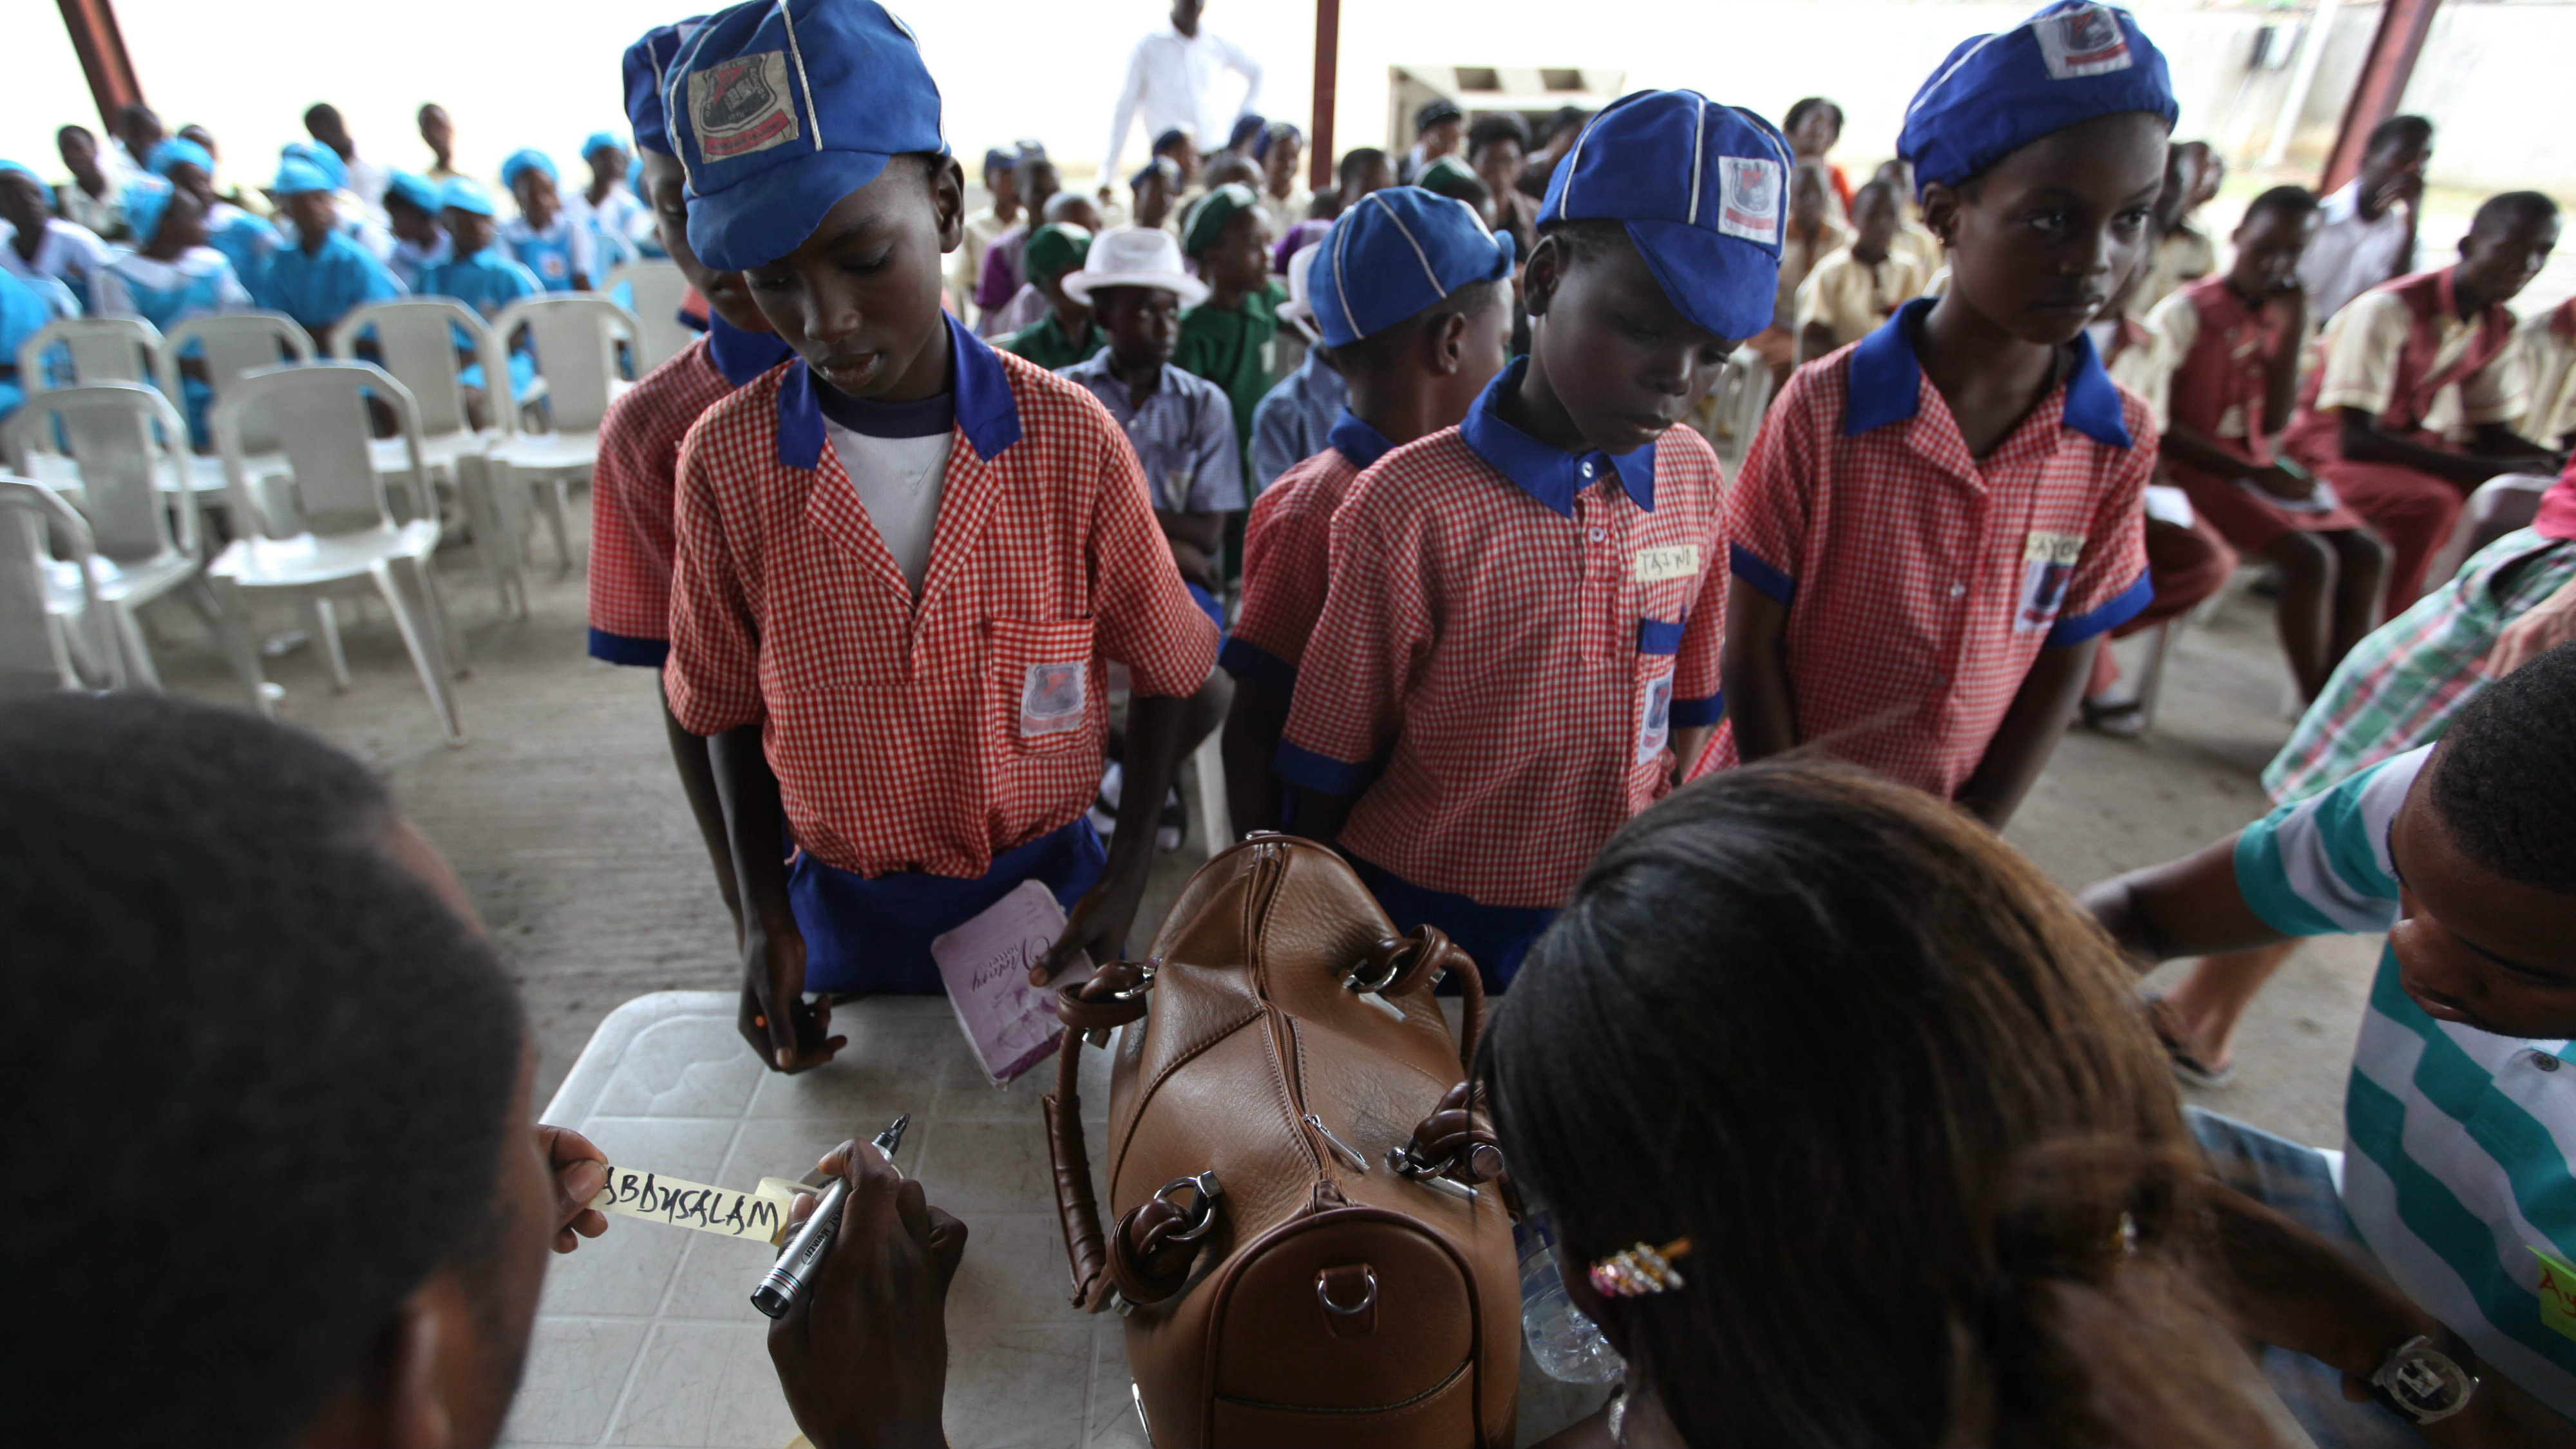 Children wait for name tags at a science fair in Lagos, Nigeria, on Tuesday, Nov. 6, 2012. Young children with inventions flocked to the Maker Faire Africa in Lagos this week to show off their creations. While Nigeria faces challenges from a lack of state-run power and poor schooling, organizers hope the fair will inspire children to pursue their interest in science and technology. (AP Photo/Jon Gambrell)